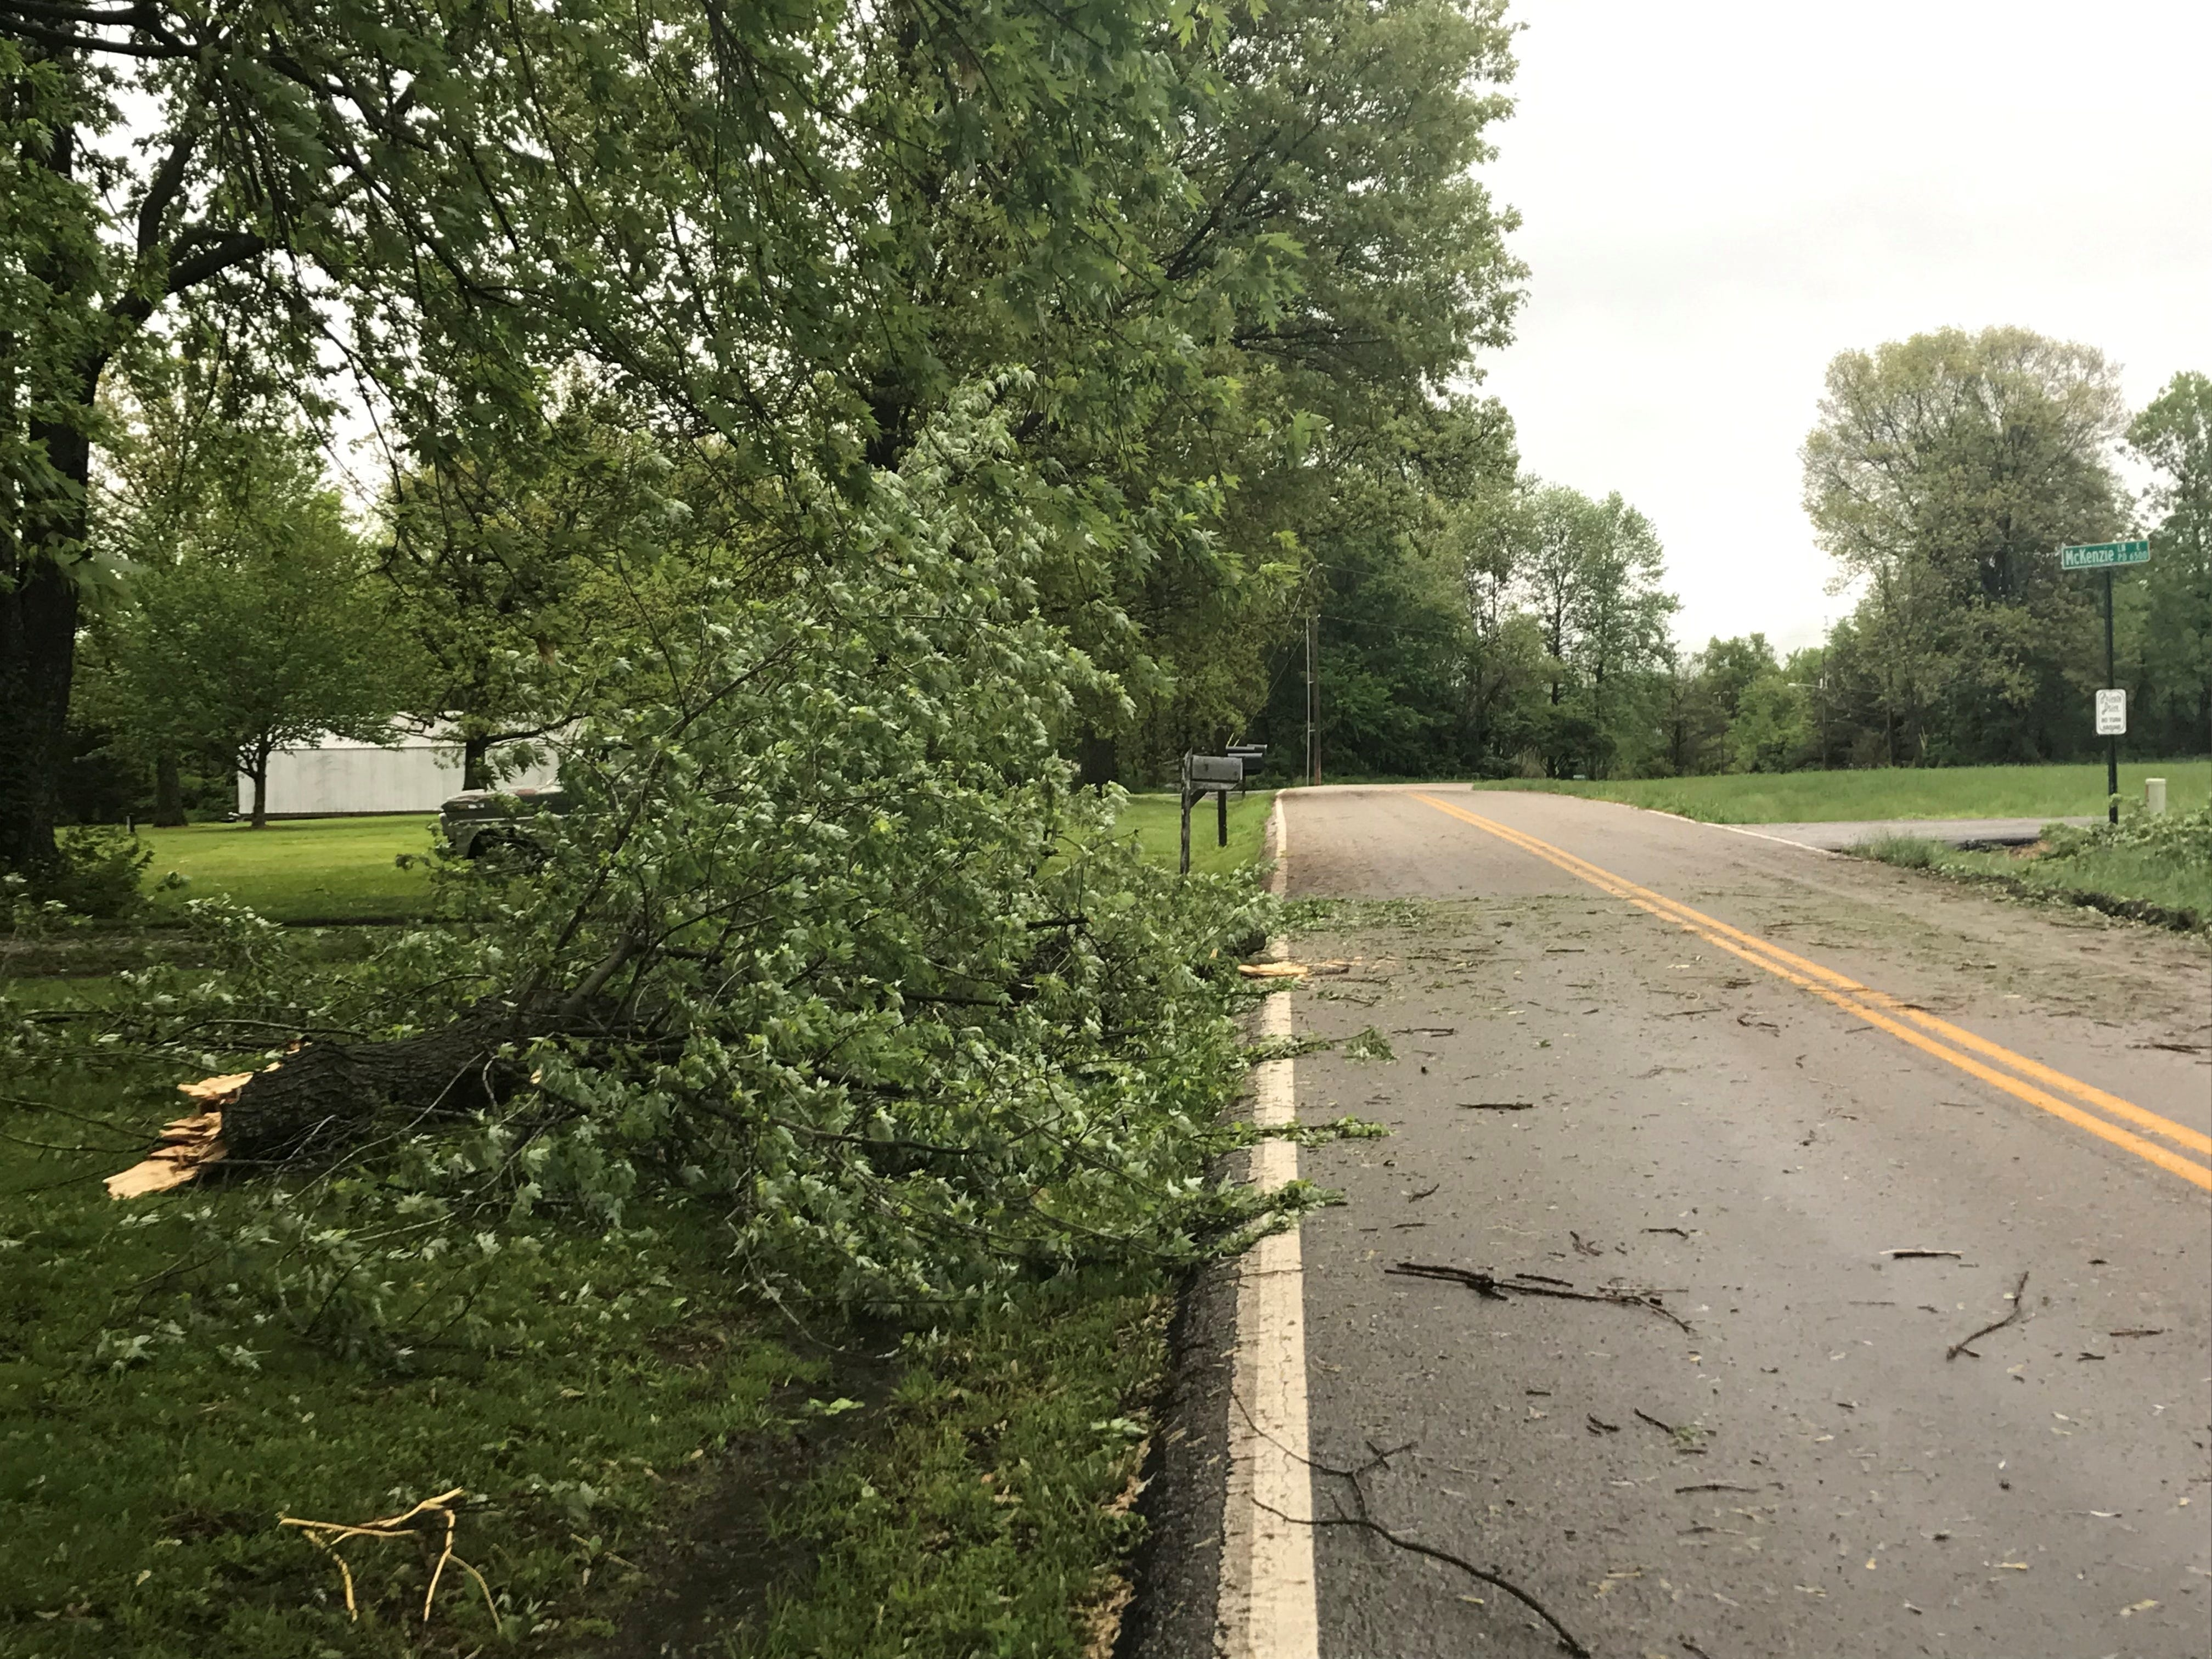 Storm damage in Rogersville on Wednesday, May 1, 2019.